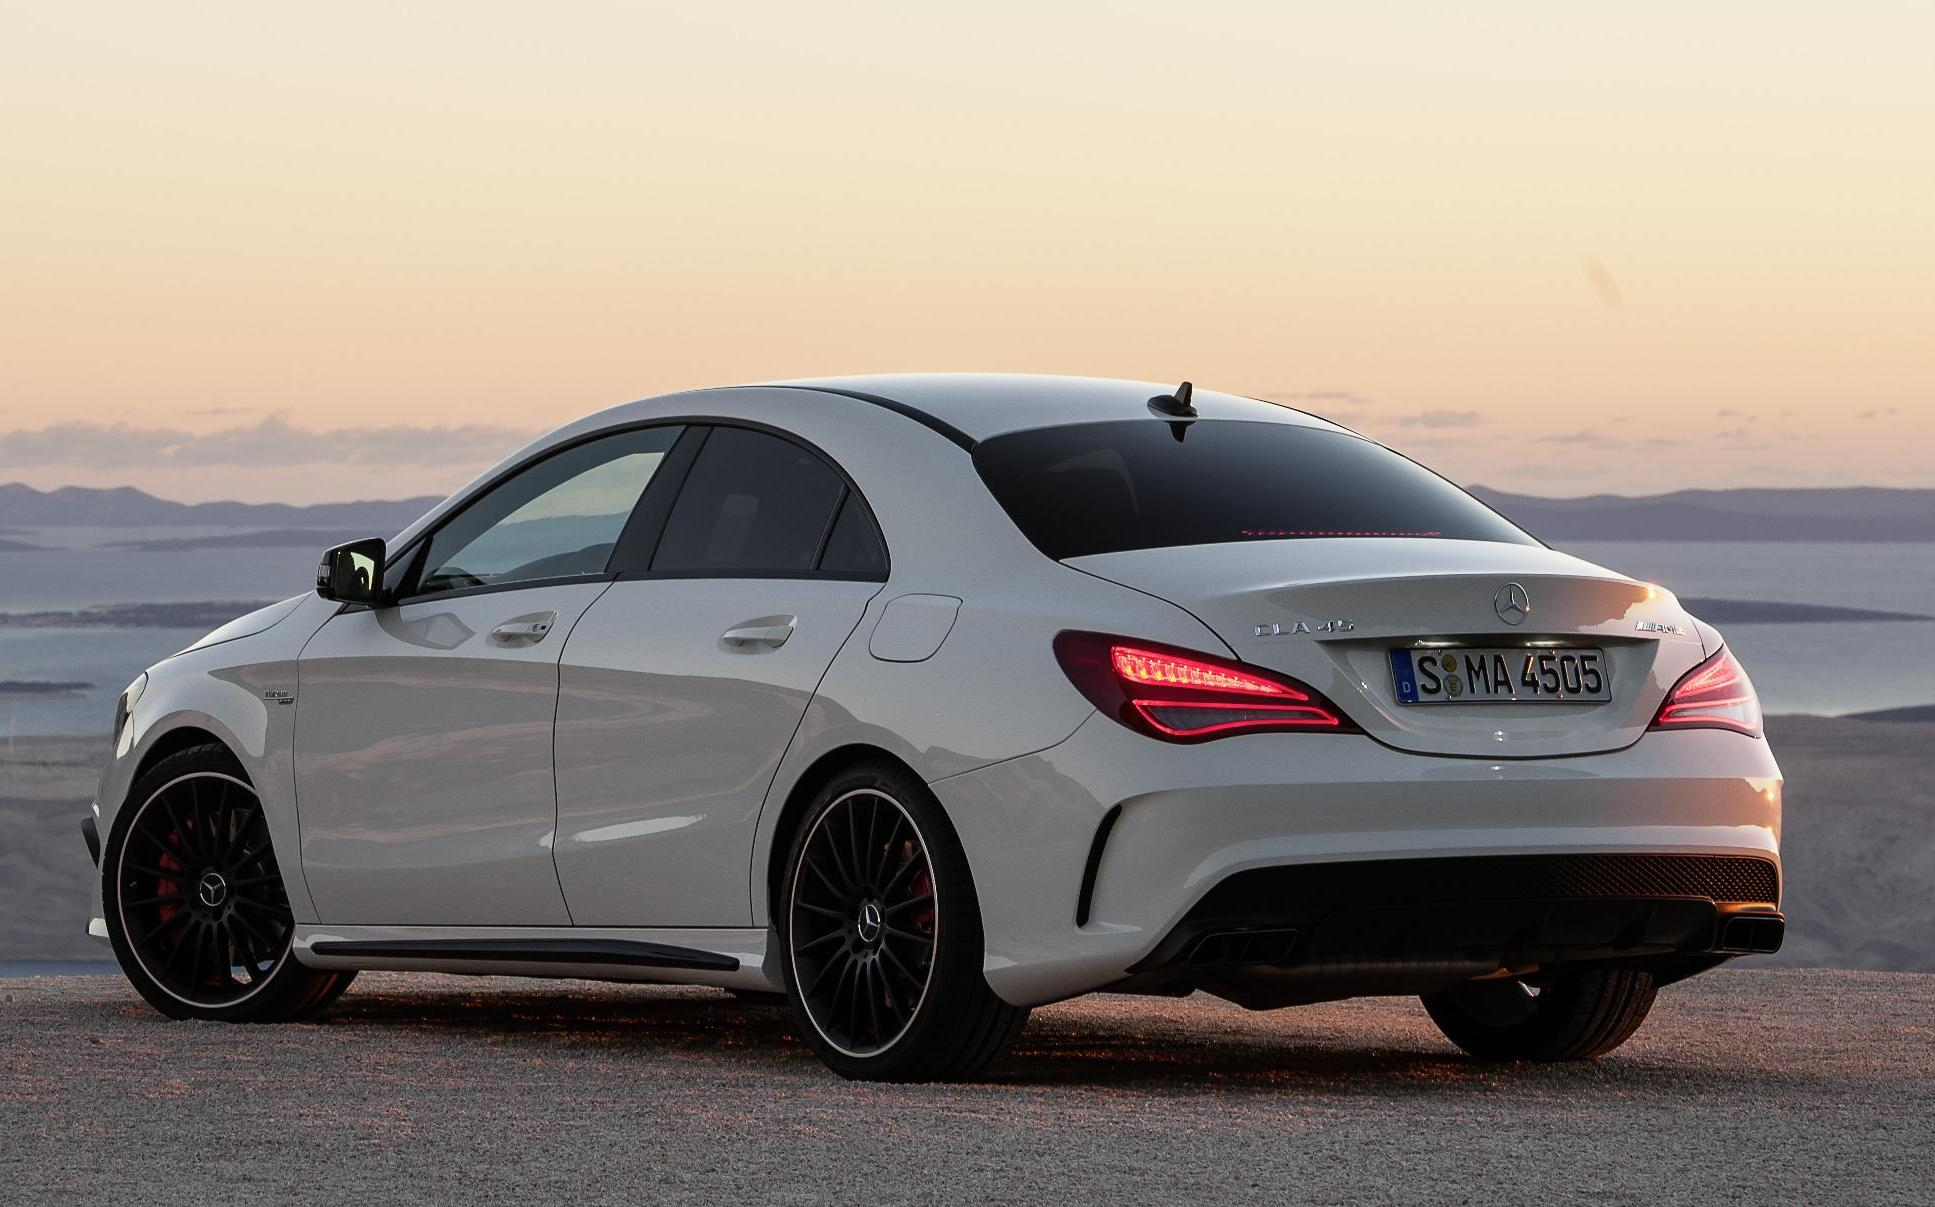 Mercedes Benz Has Already Updated Its Official Website With The CLA45 AMG  Which Was Unveiled At The 2014 Delhi Motor Show.